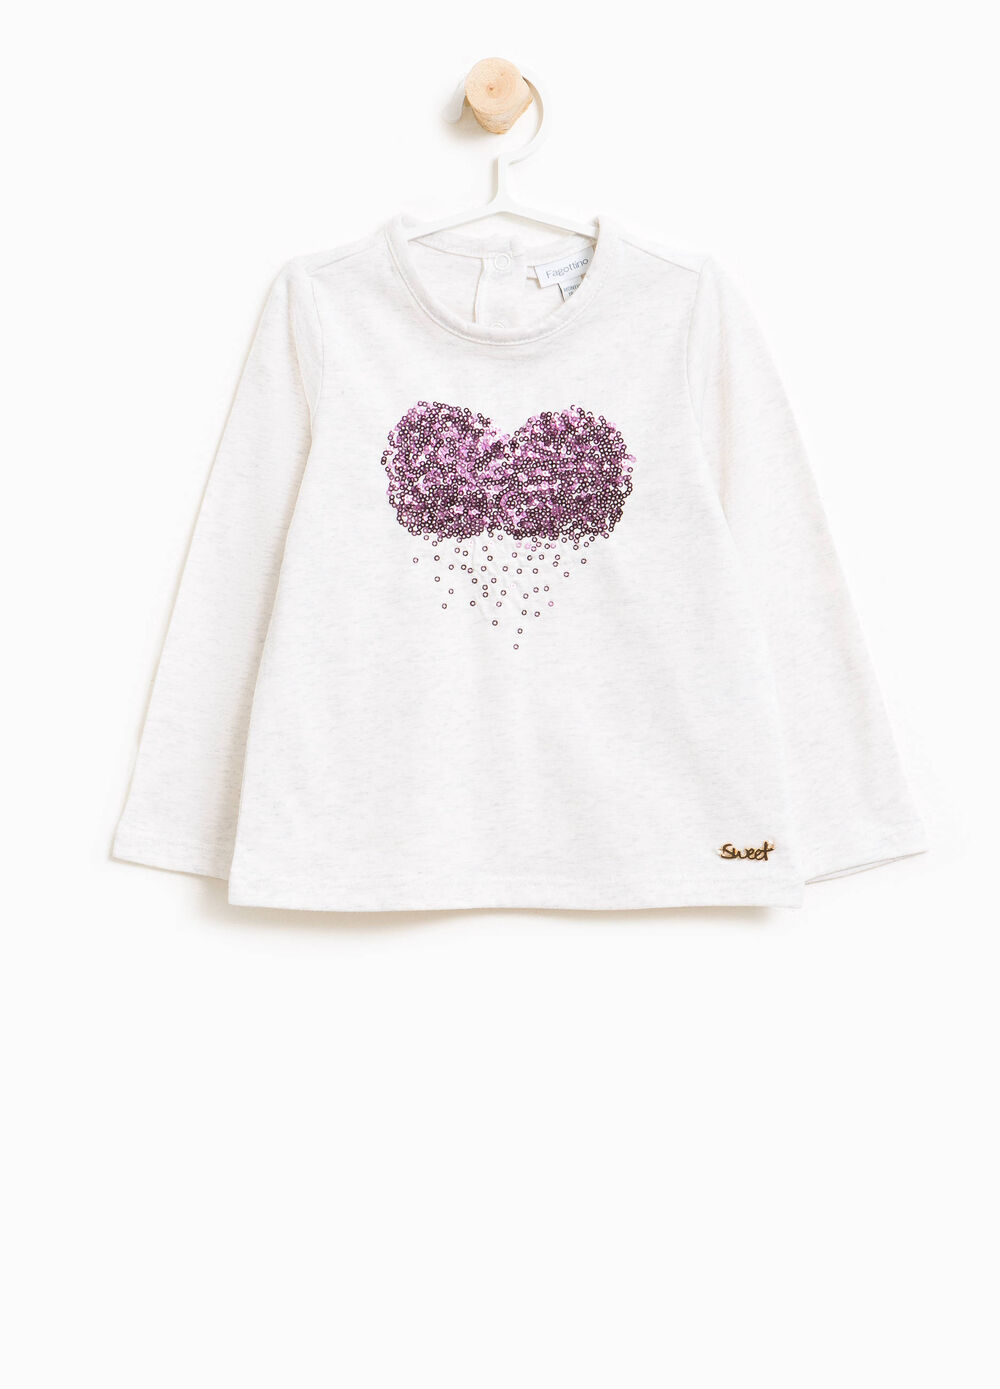 T-shirt in cotone stretch paillettes cuore